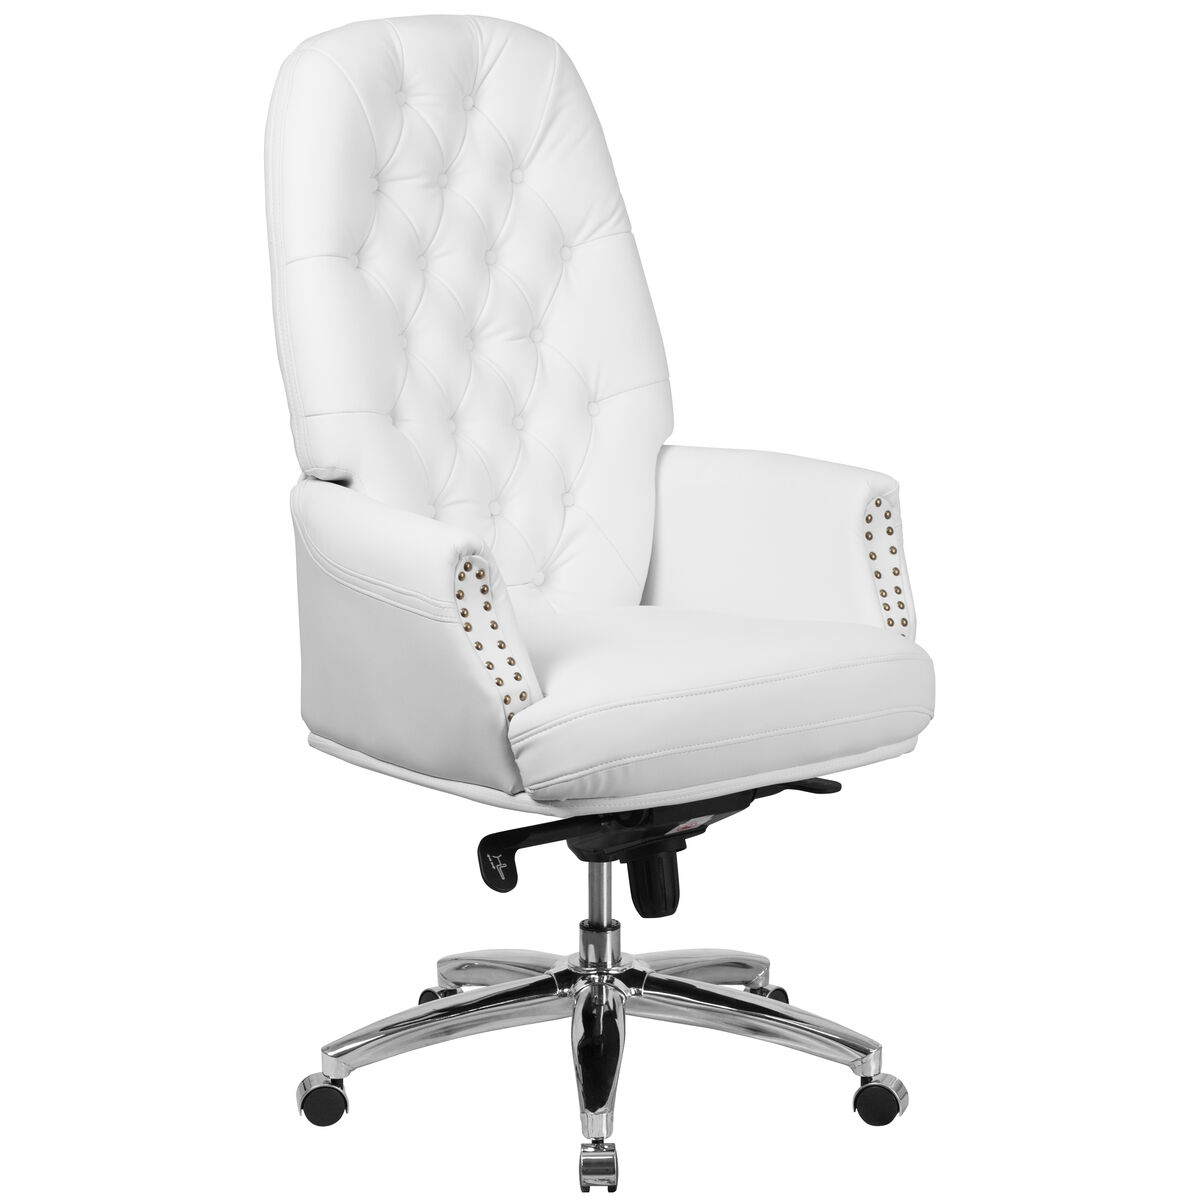 Our High Back Traditional Tufted White Leather Multifunction Executive Swivel Ergonomic Office Chair With Arms Is